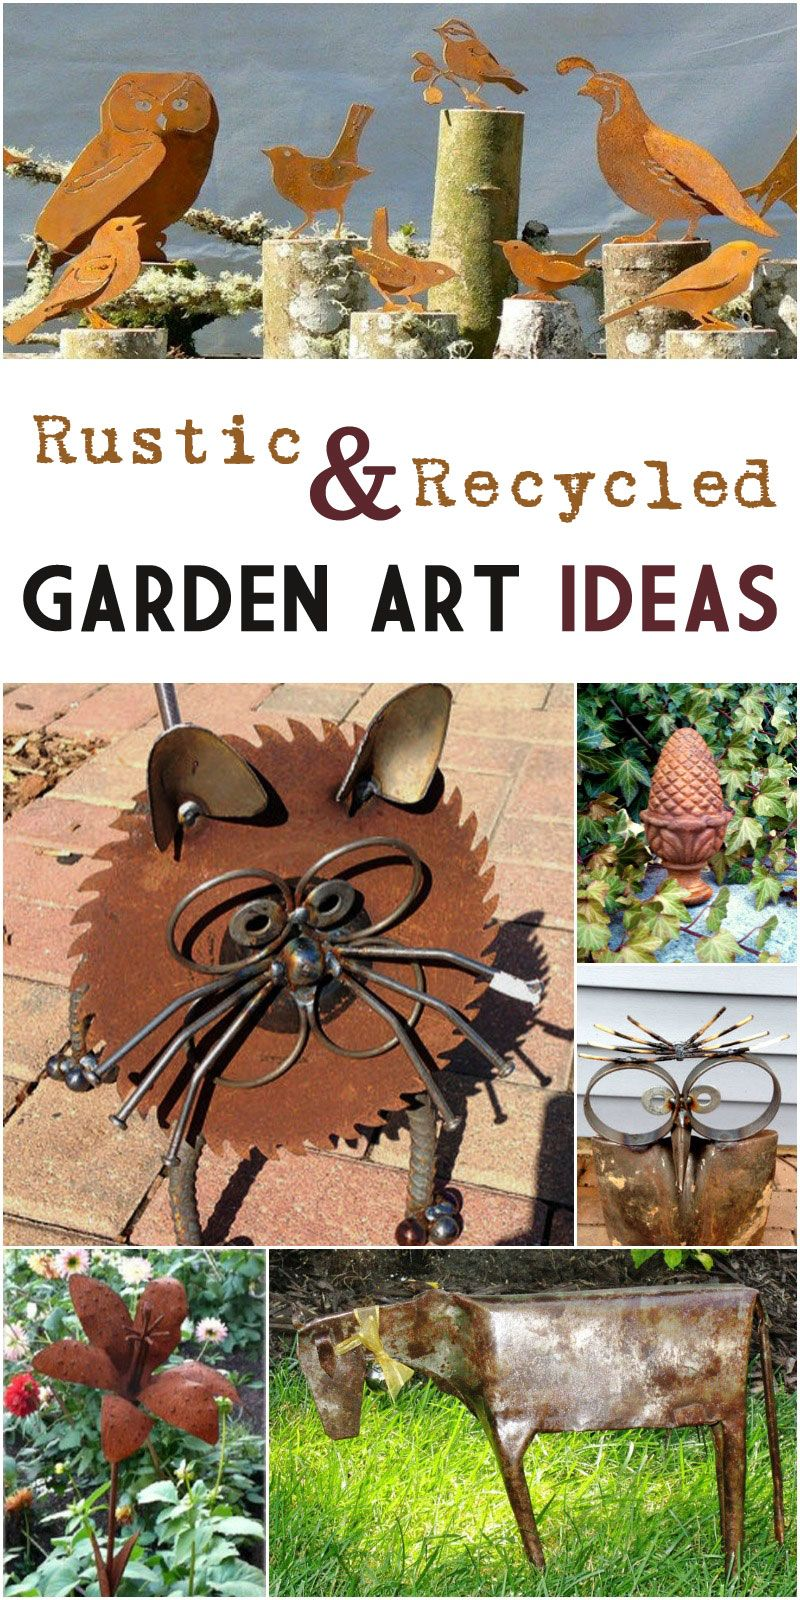 Rustic recycled garden art ideas garden art rust and for Recycled garden art ideas